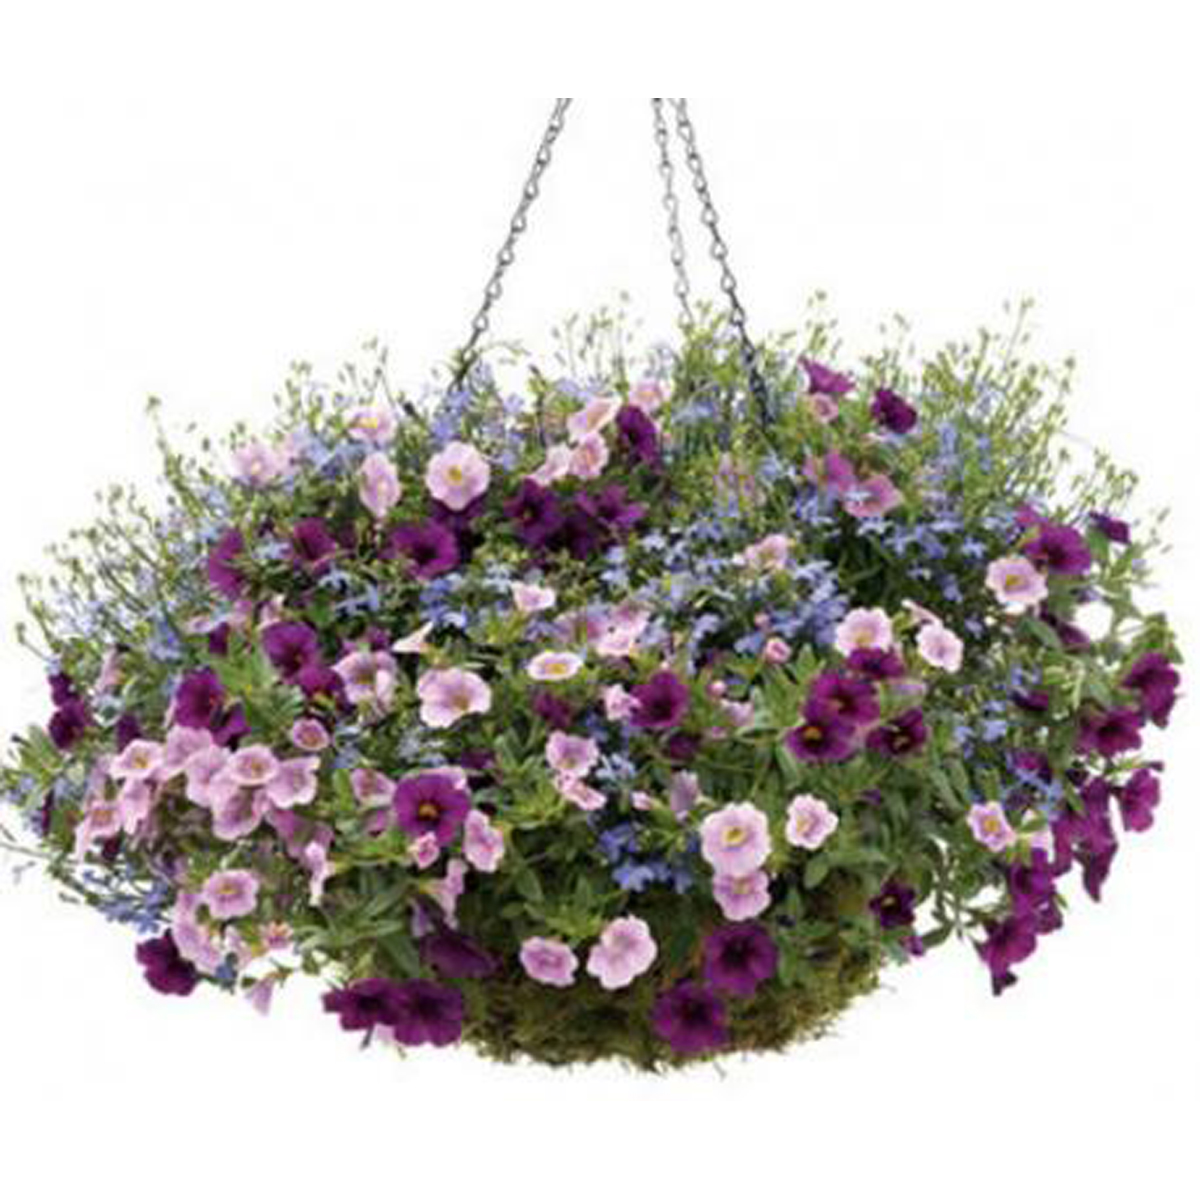 Hanging baskets were among the property stolen